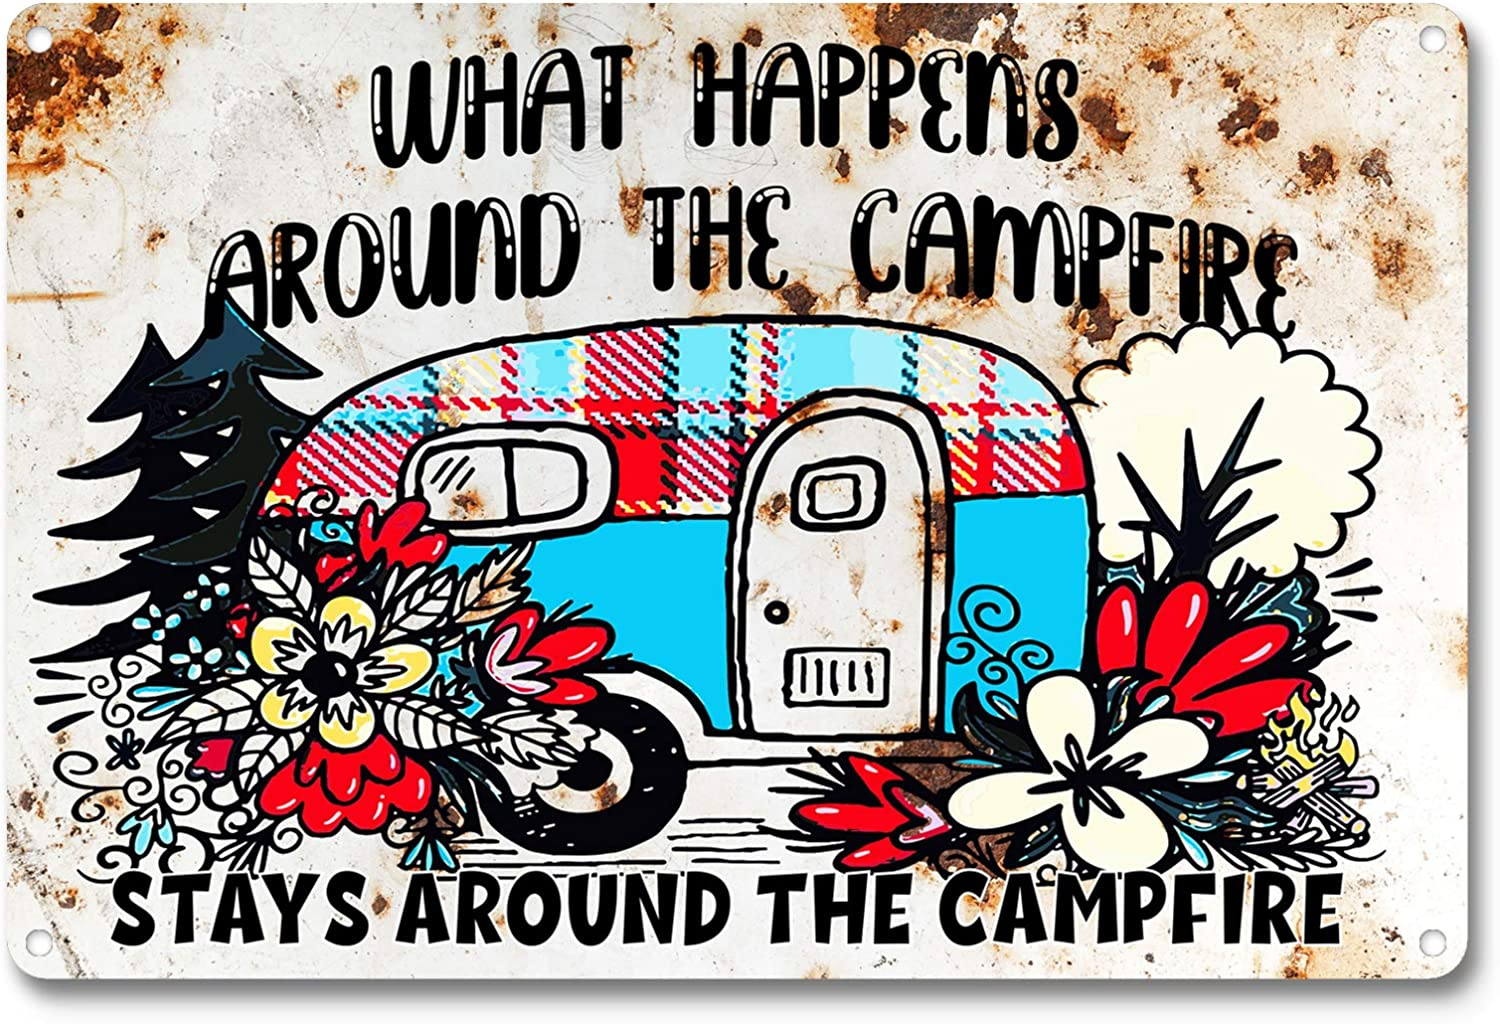 OCCdesign What Happens Around The Campfire,Stay Around The Campfire, Funny Camper Quote Camping Retro Farmhouse Metal Tin Decor Sign Gift Idea for Friend Family Motorhomes/RV Camping